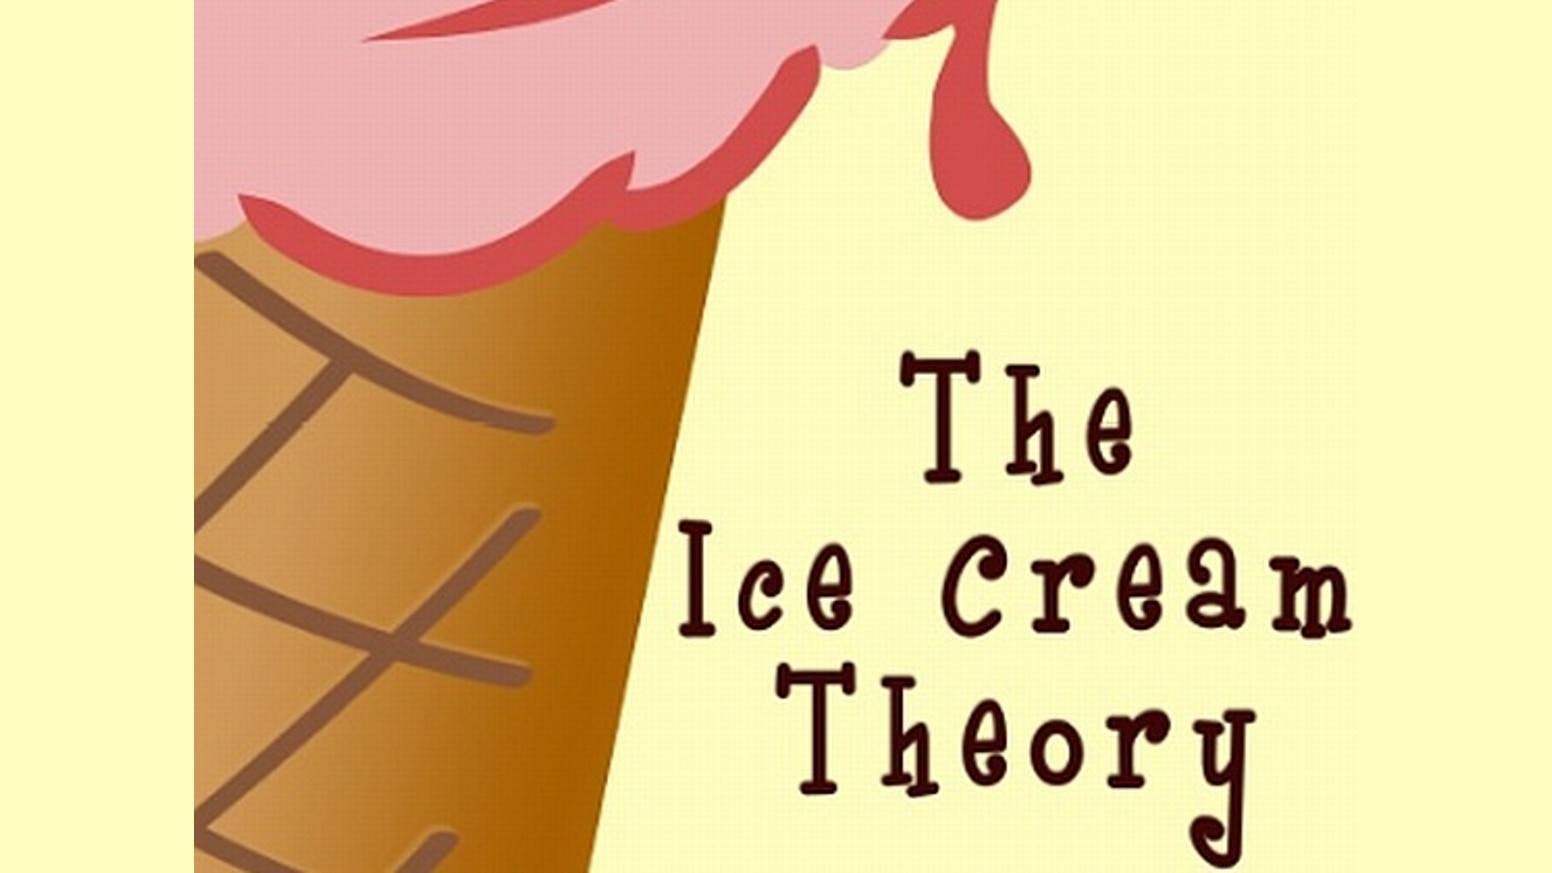 marketing the ice cream theory by steff deschenes kickstarter i self published a book last it s won 10 indie awards but i can t keep funding this project on my own and great things lie ahead for it